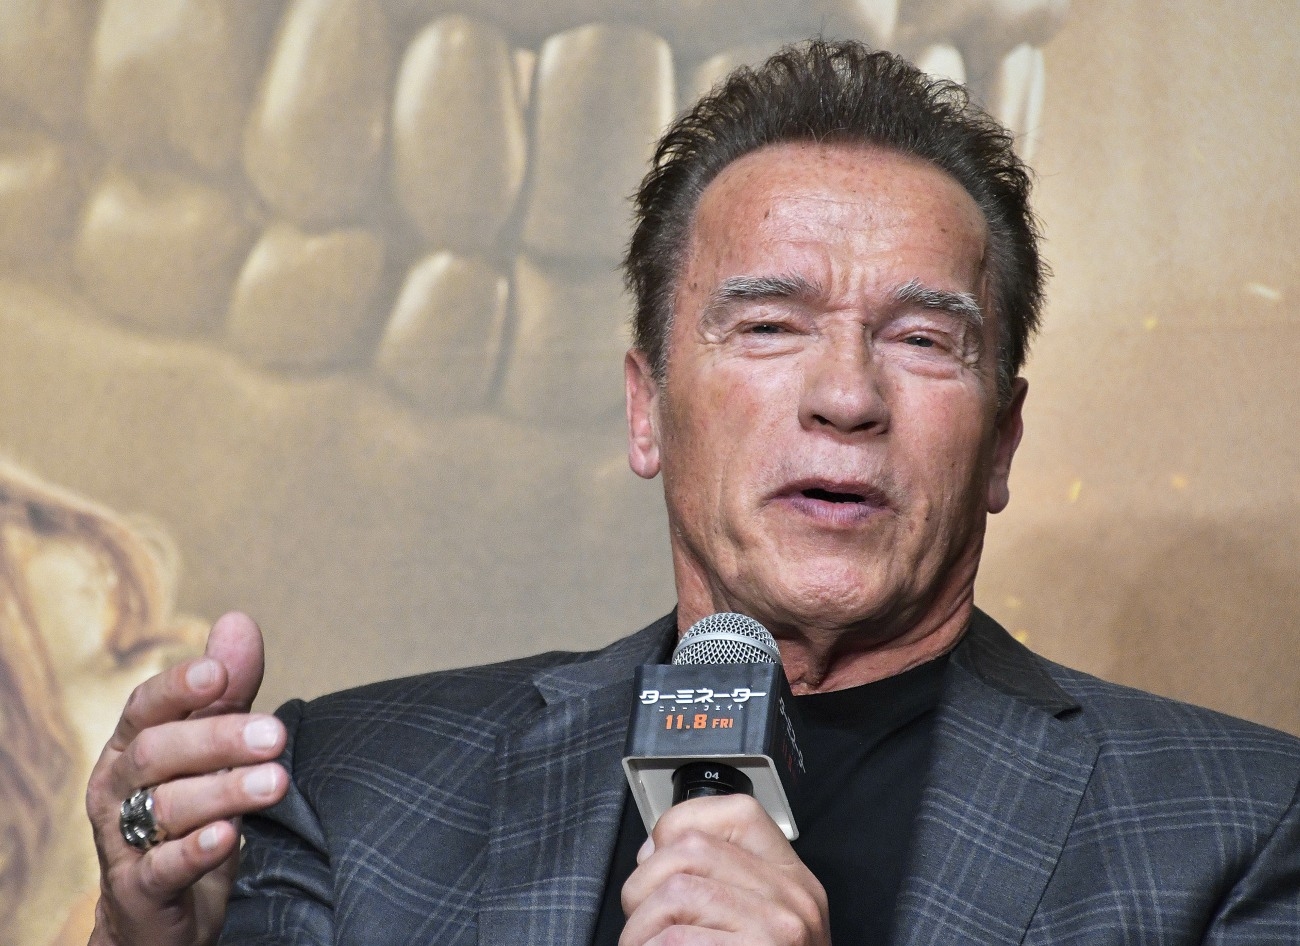 Arnold Schwarzenegger at the press conference for the movie 'Terminator: Dark Fate' at Belle Salle Roppongi. Tokyo, 05.11.2019   usage worldwide